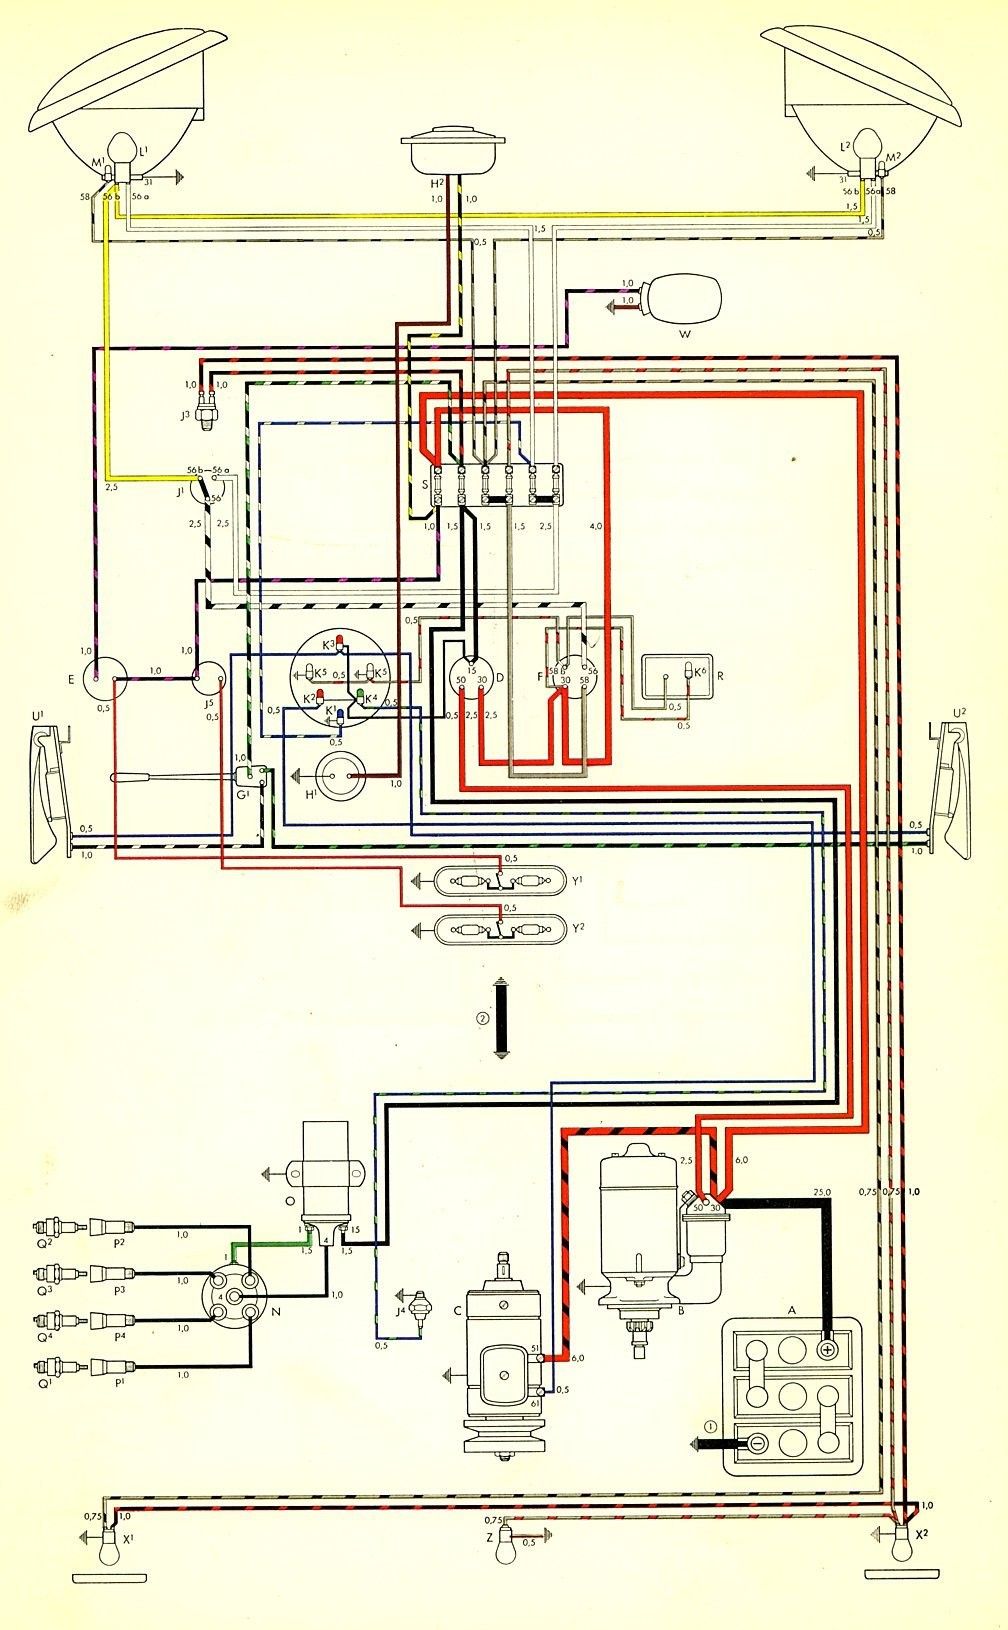 ... vw alternator wiring diagram best of wiring diagram image 74 vw  alternator wiring diagram thesamba type · vw trike ...